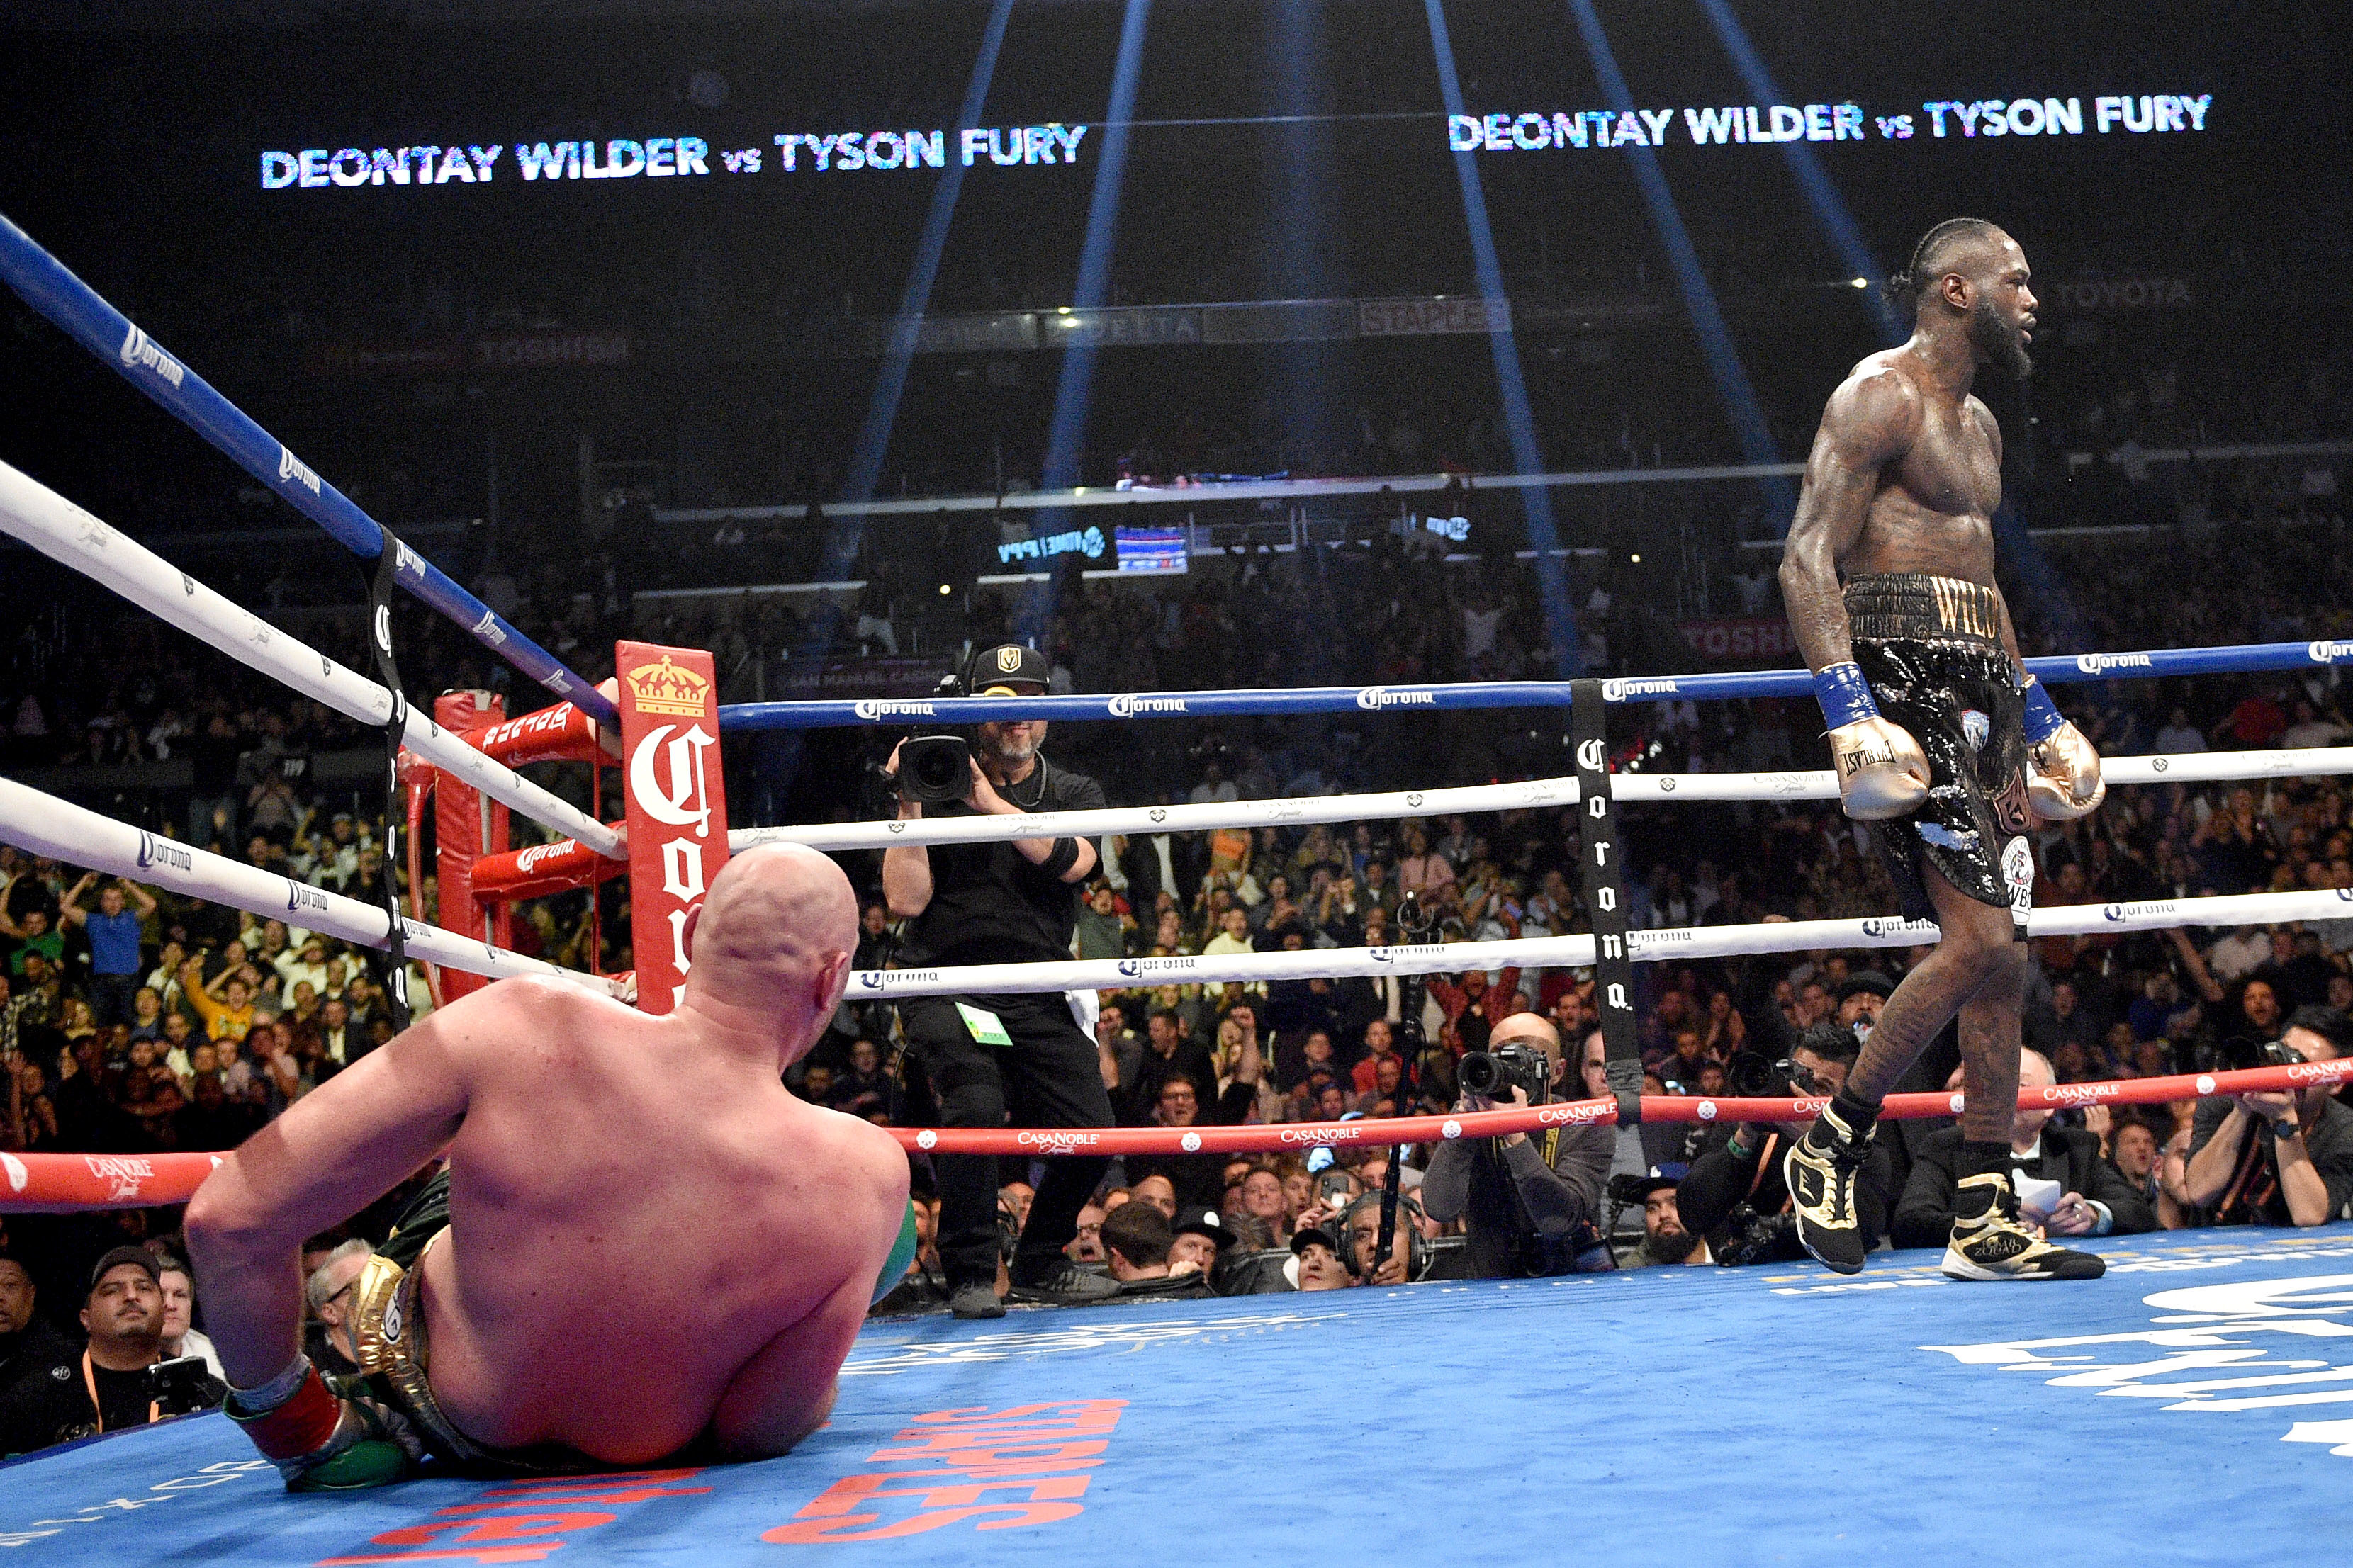 Tyson Fury to face Deontay Wilder in trilogy of fights